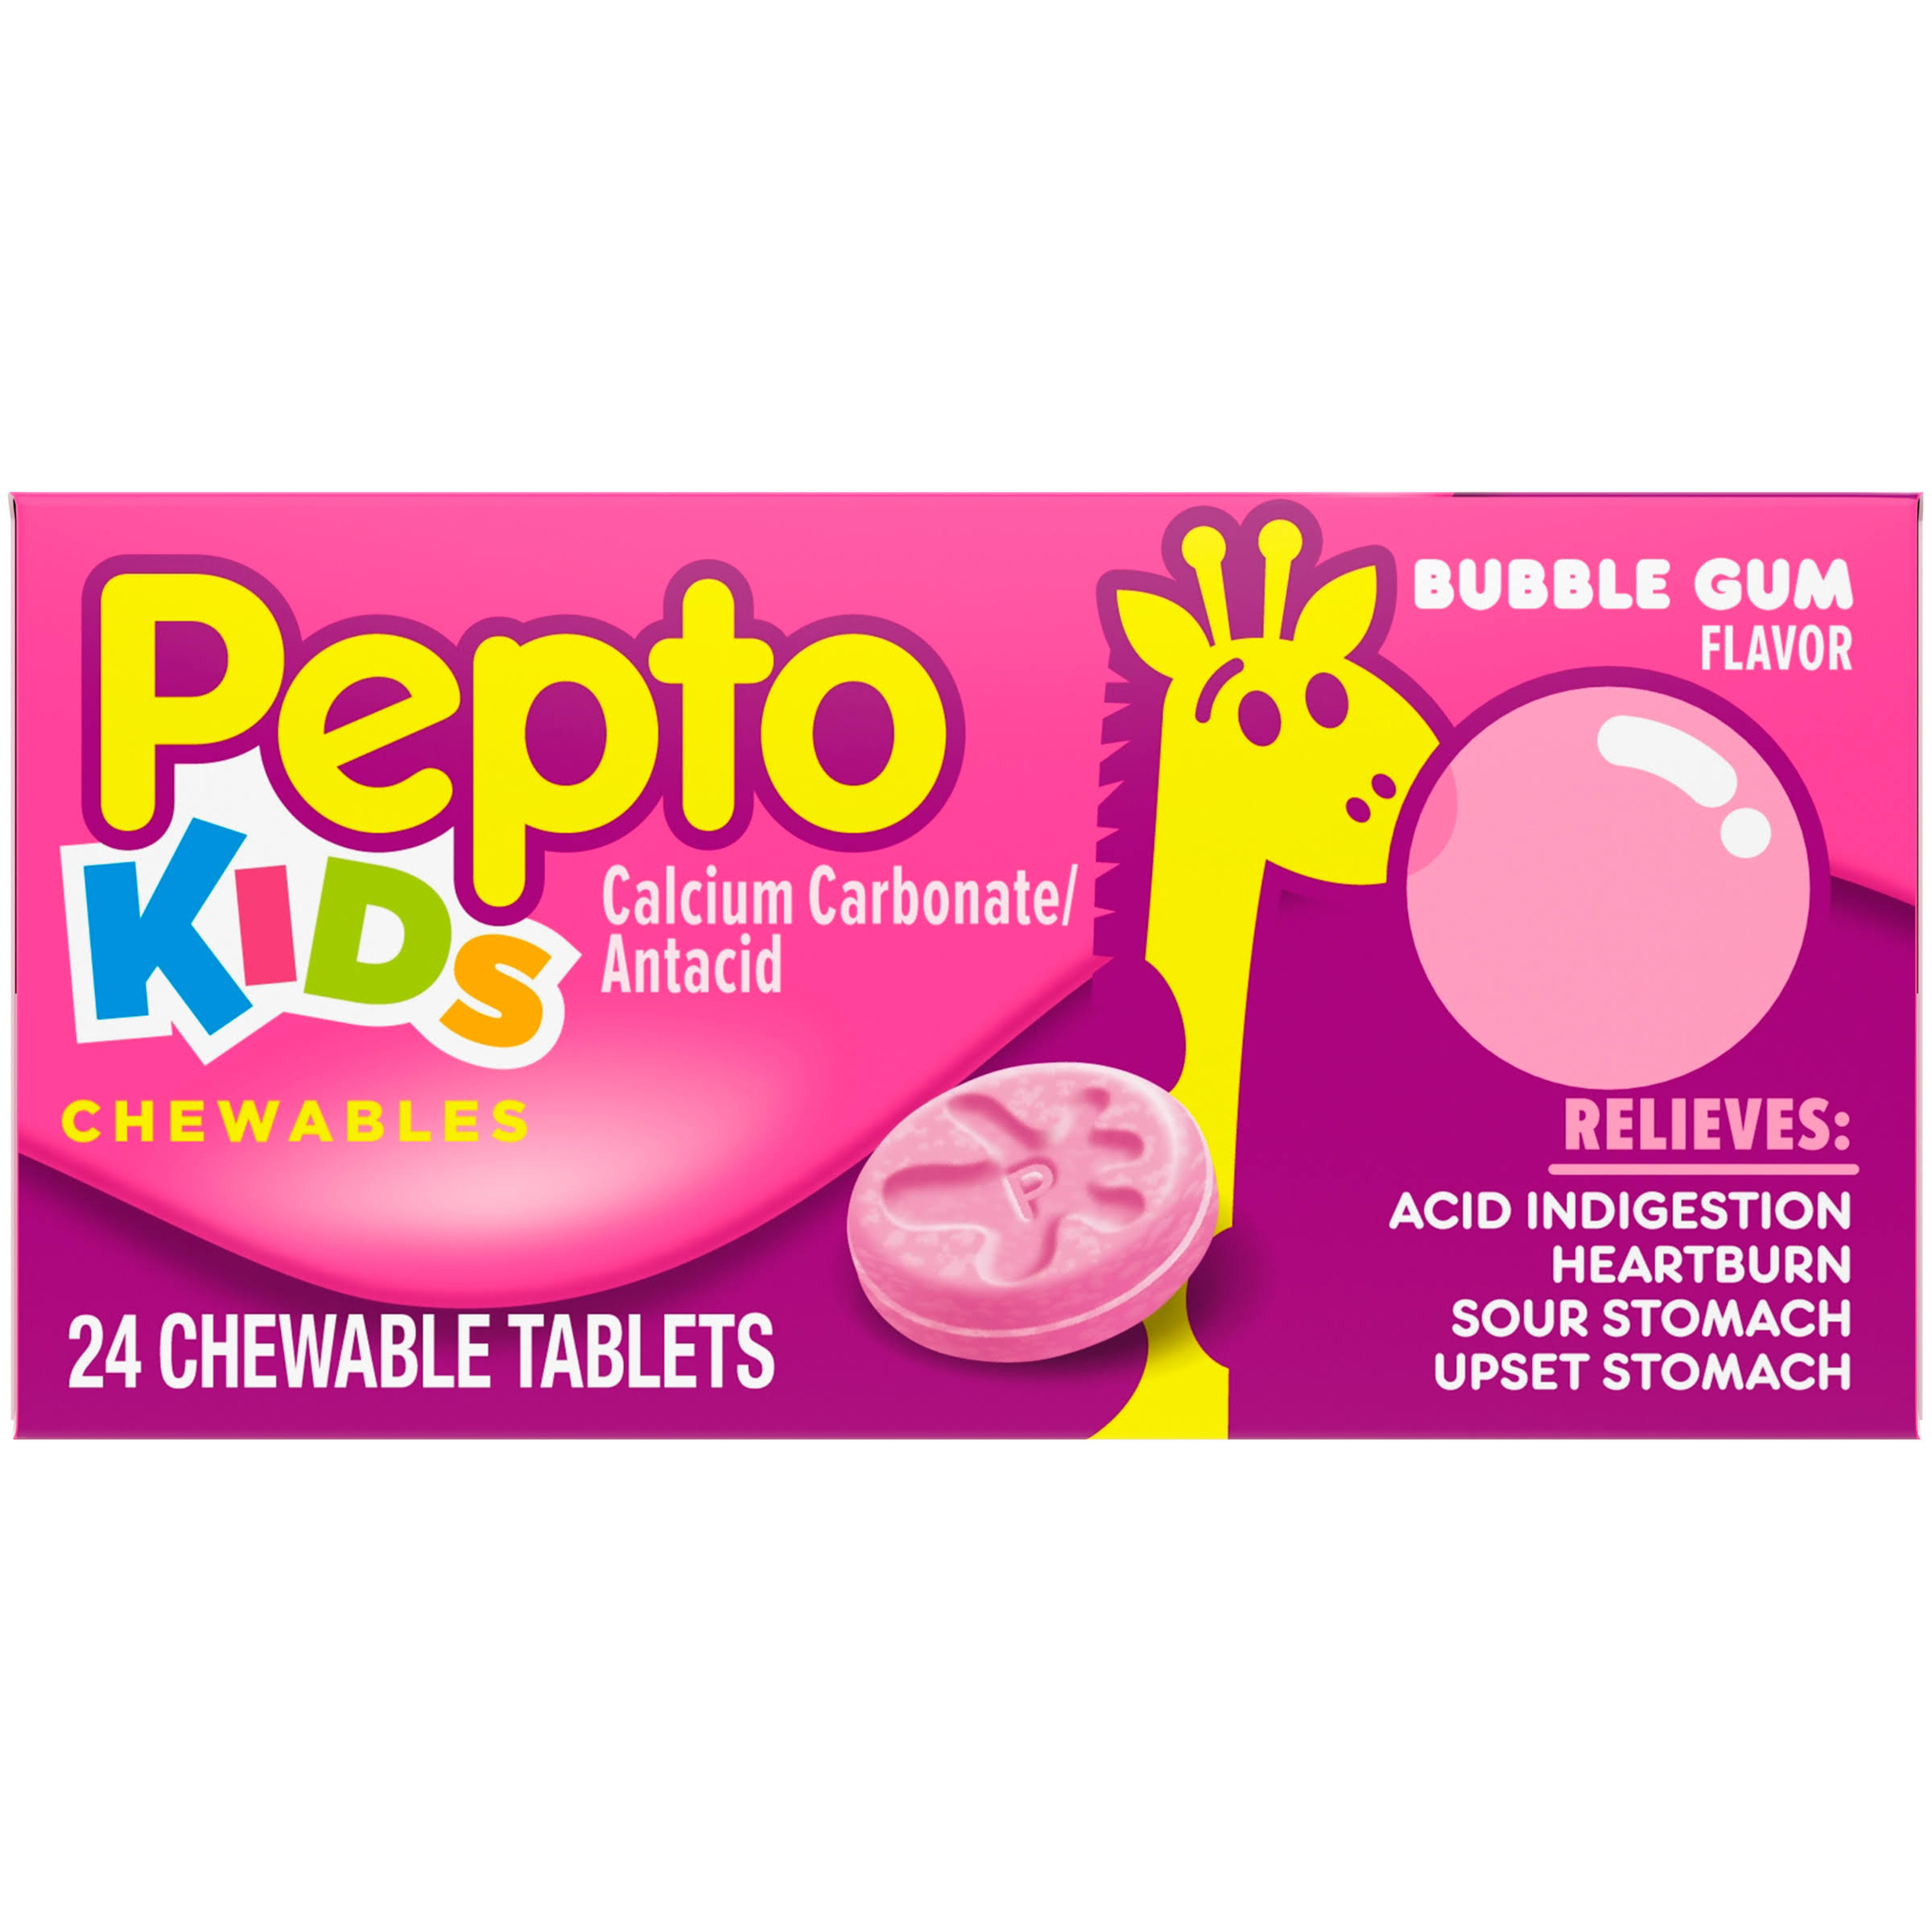 Children's Pepto Upset & Sour Stomach Medicine - Bubblegum Flavor Relief 24 count